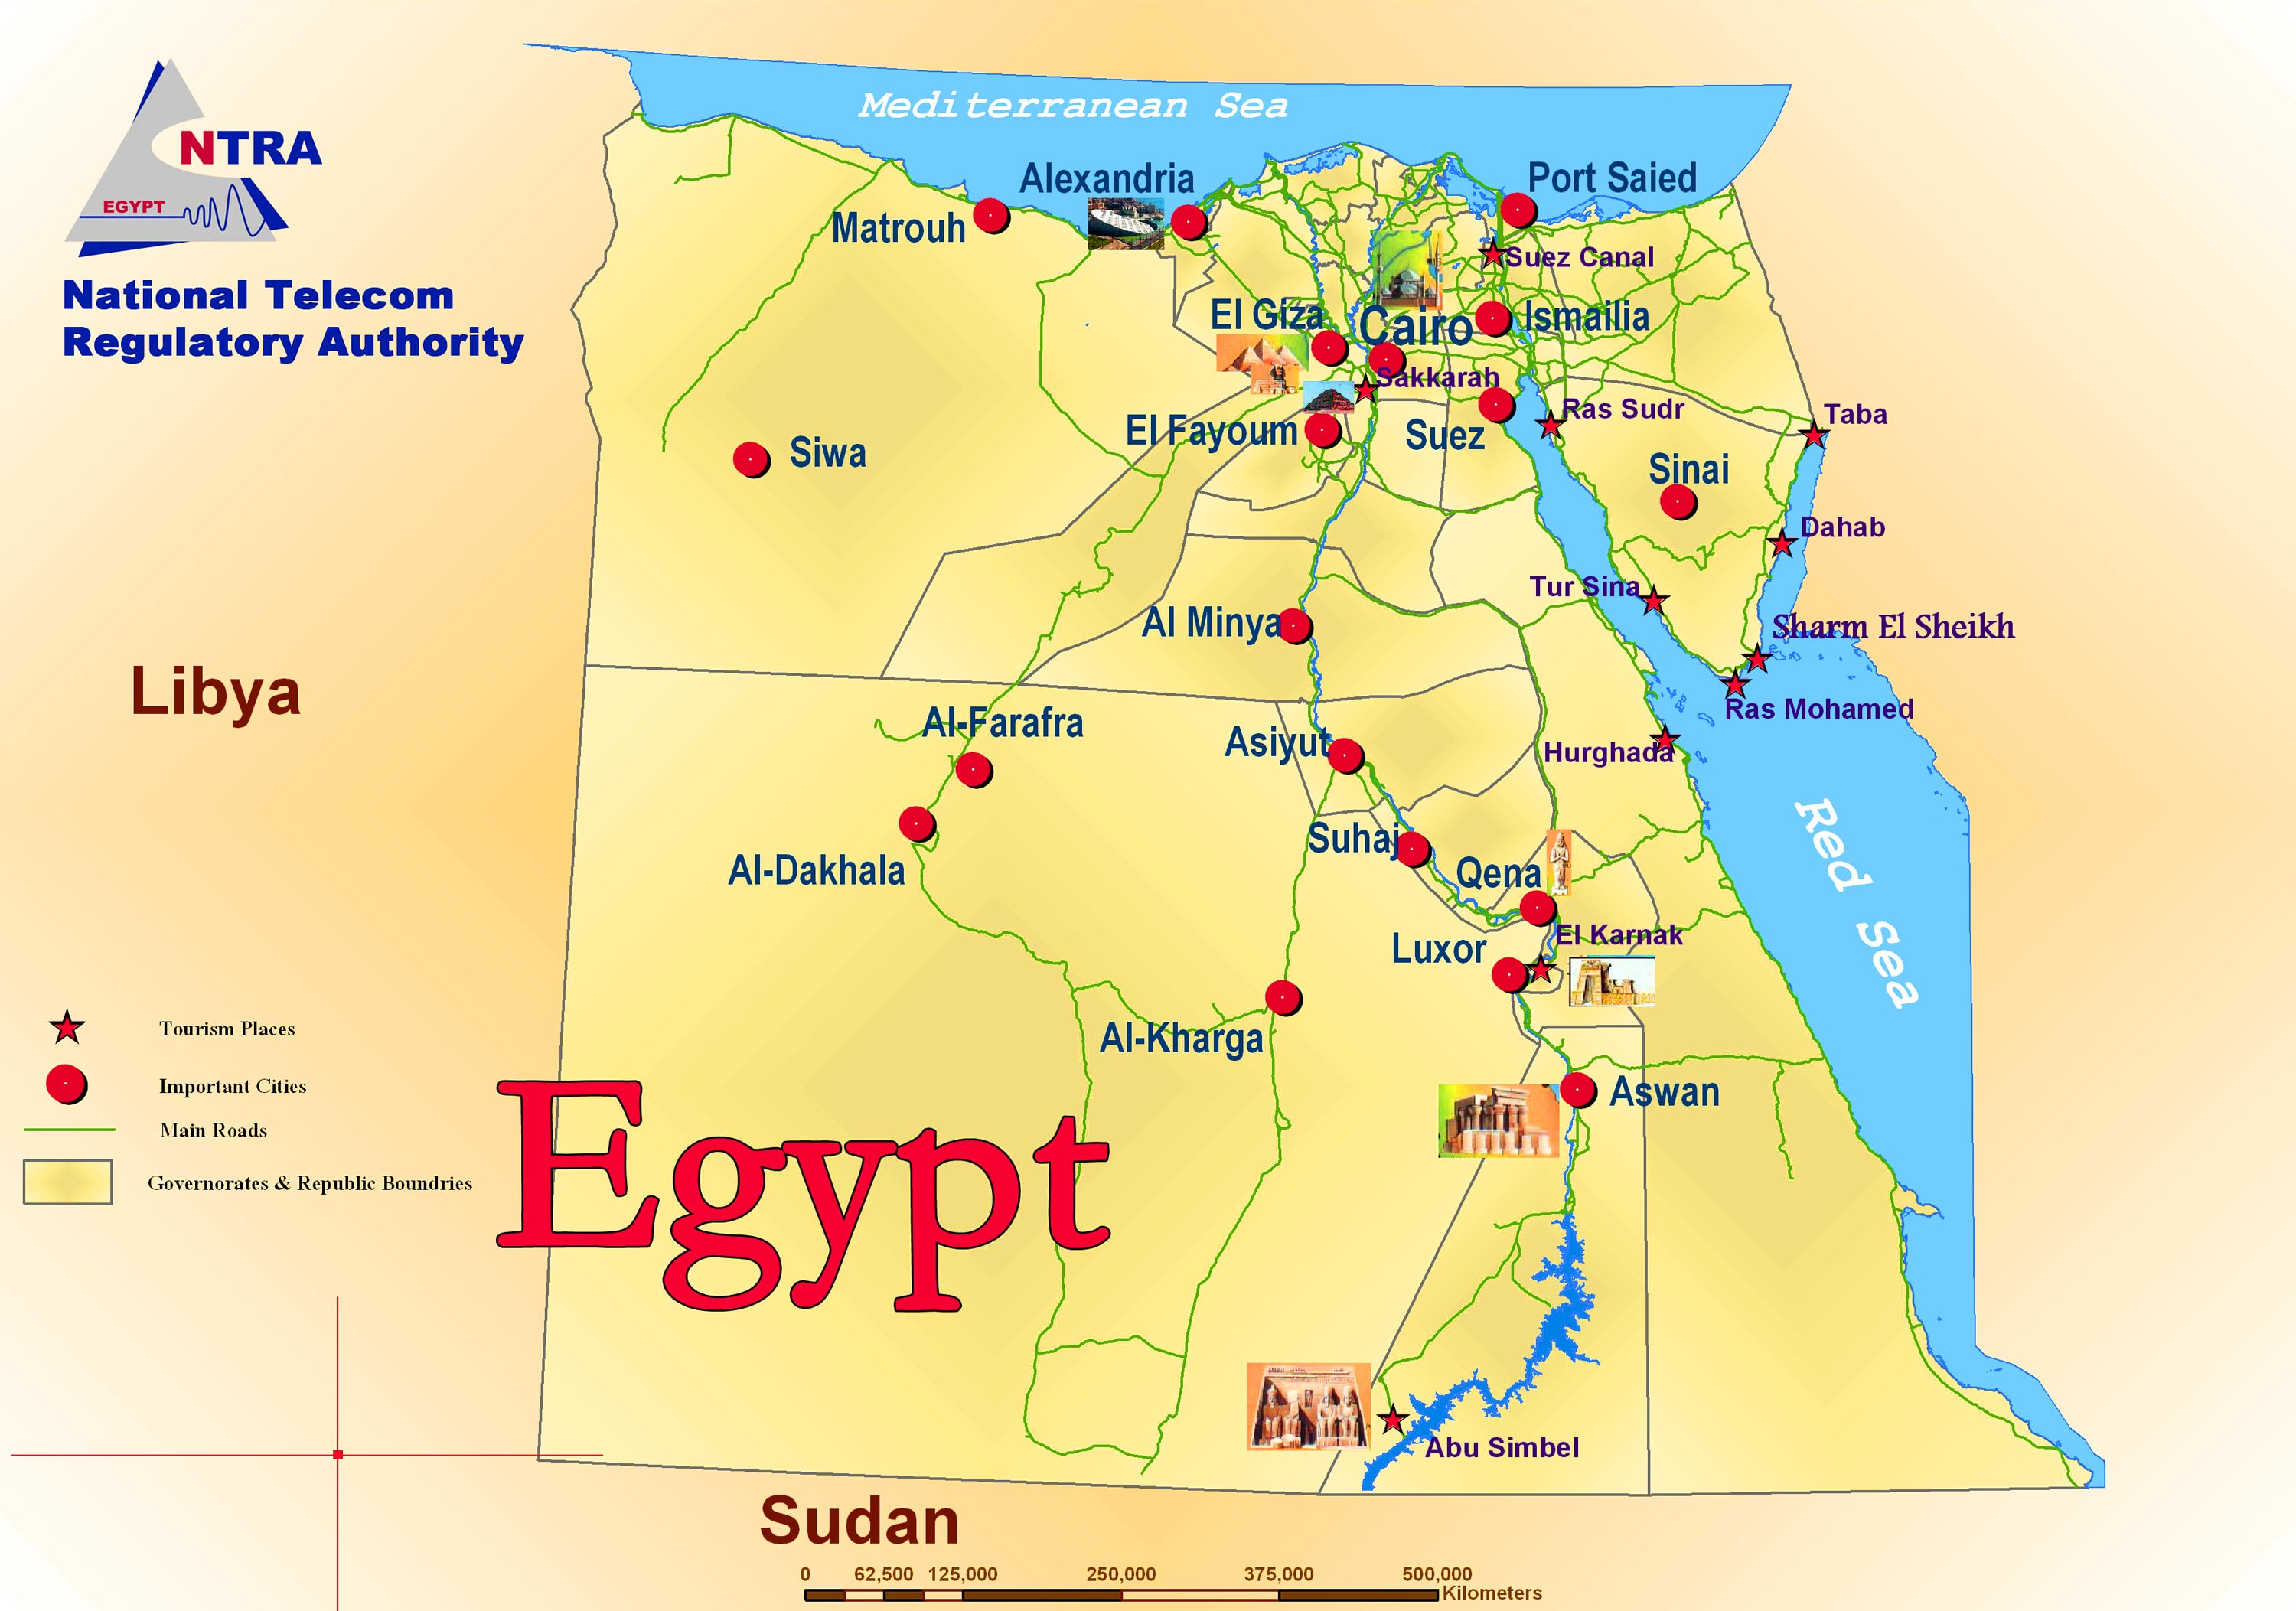 egyptpoliticalandtouristmap – travel around the world  - egyptpoliticalandtouristmap